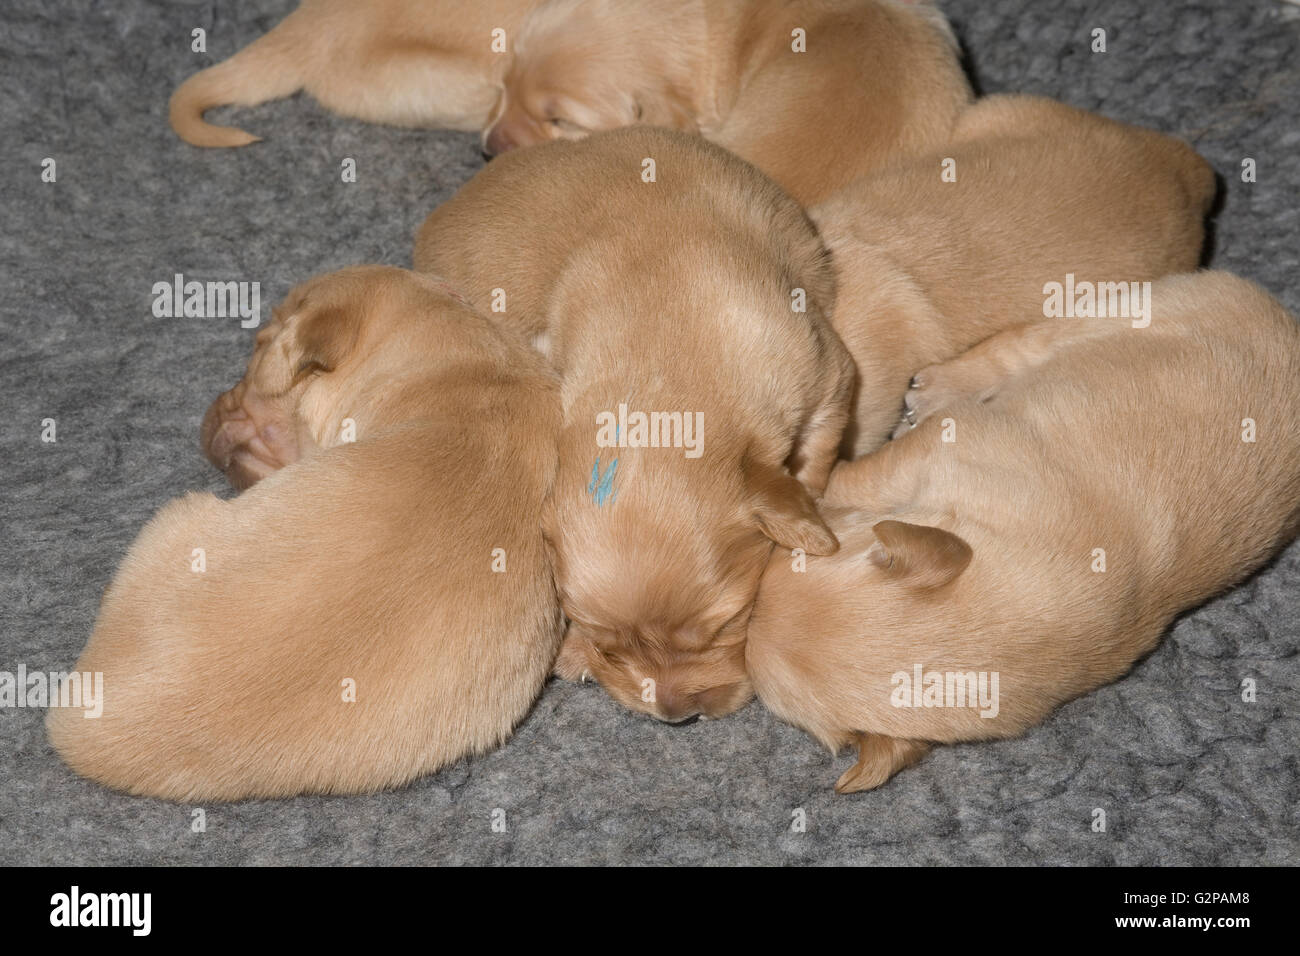 Golden retriever puppies resting close together on polyester fur rug - Stock Image